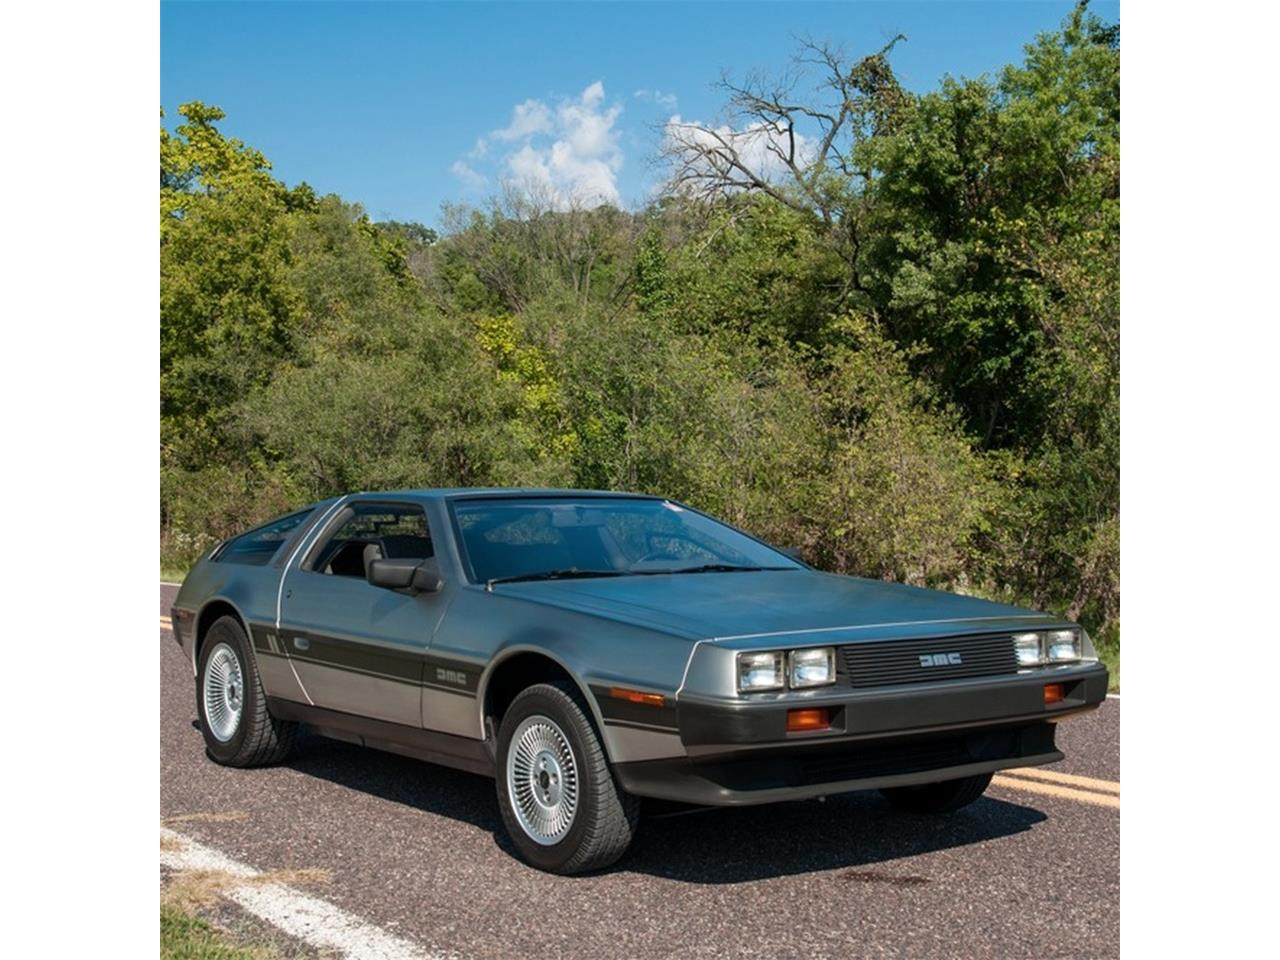 Large Picture of '81 DeLorean DMC-12 located in St. Louis Missouri - $73,500.00 Offered by MotoeXotica Classic Cars - JPXR